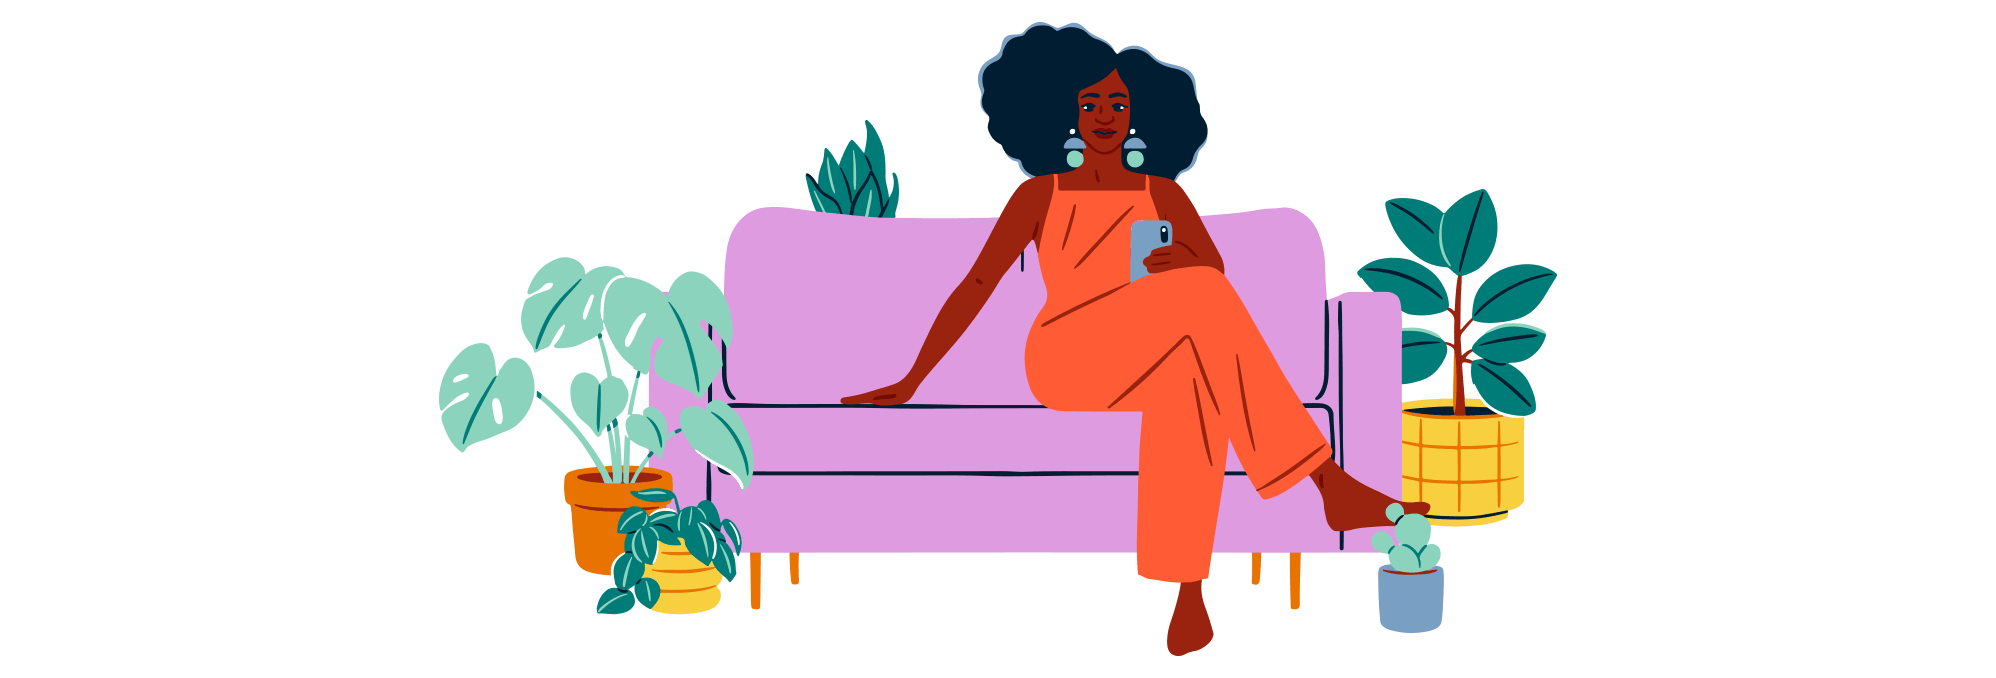 Illustration of a woman sitting on a couch checking her phone.